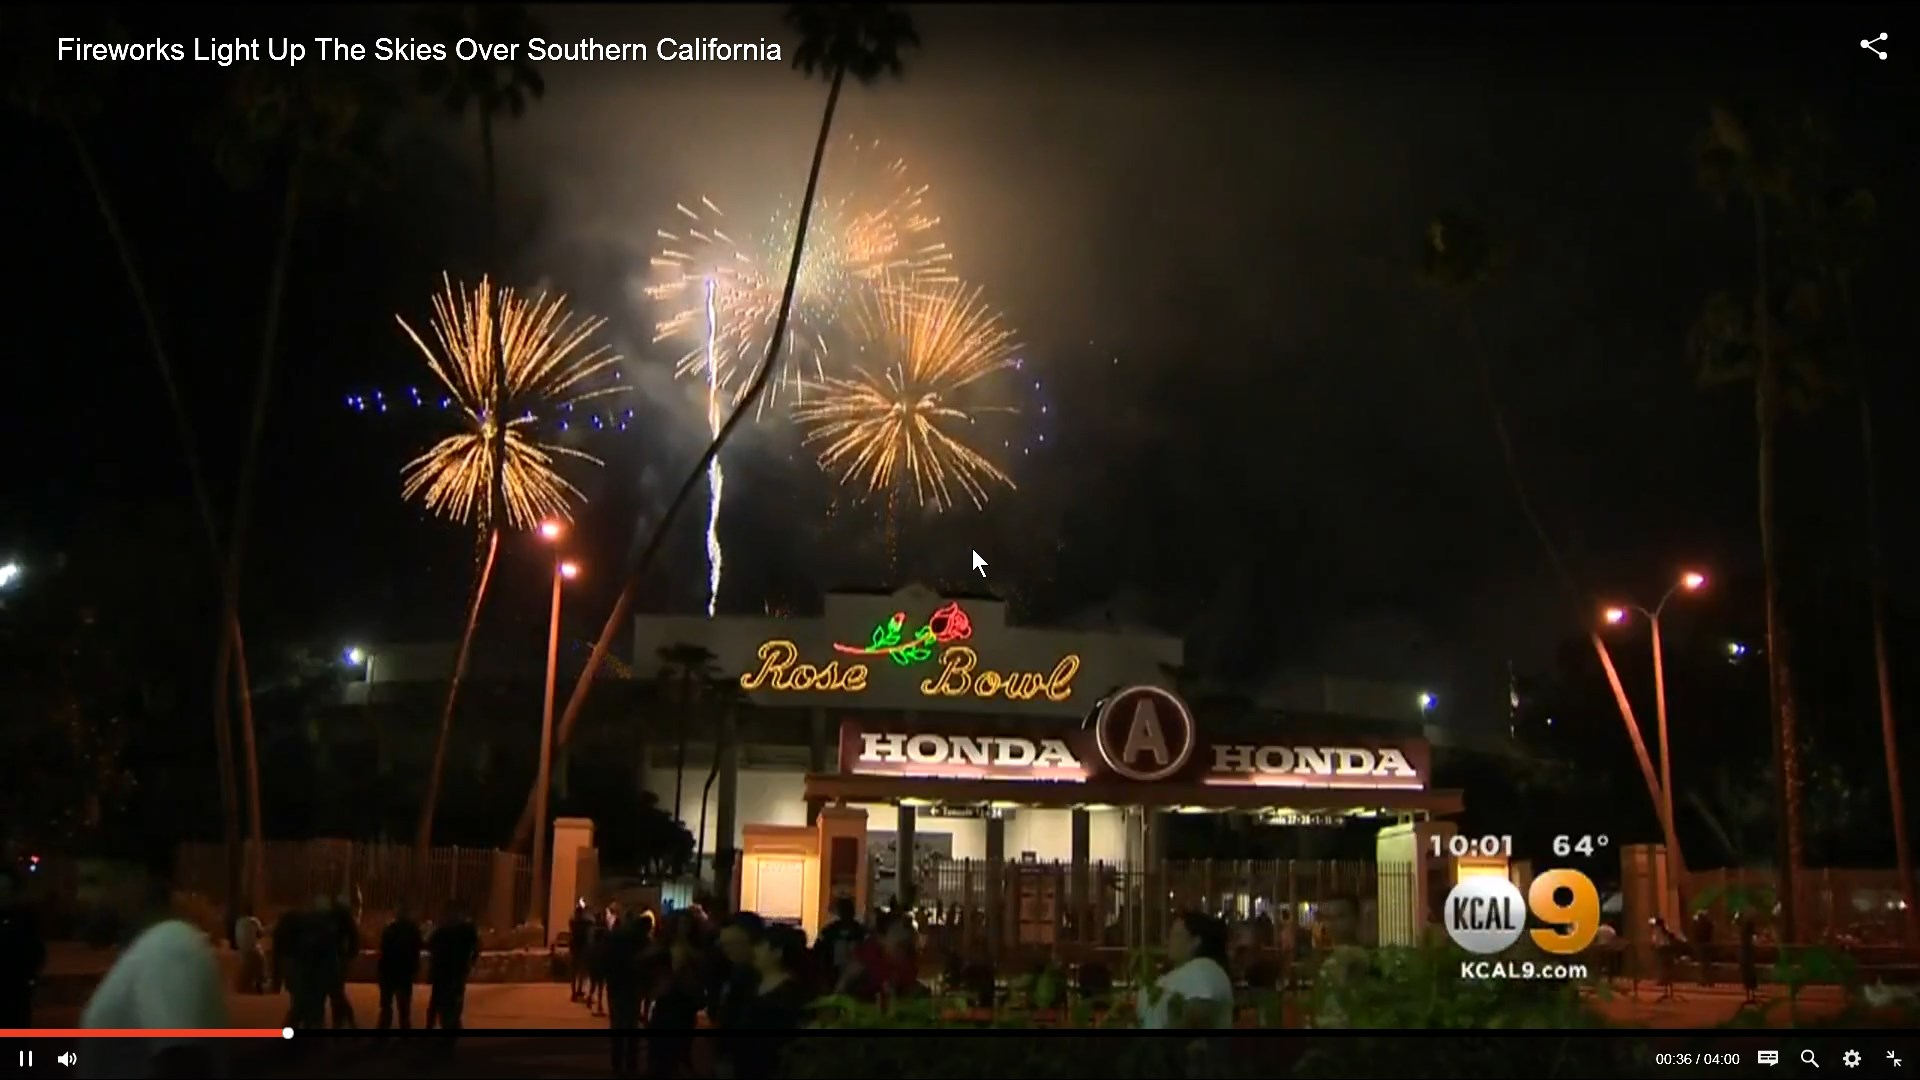 Fireworks Light Up Southern California Skies